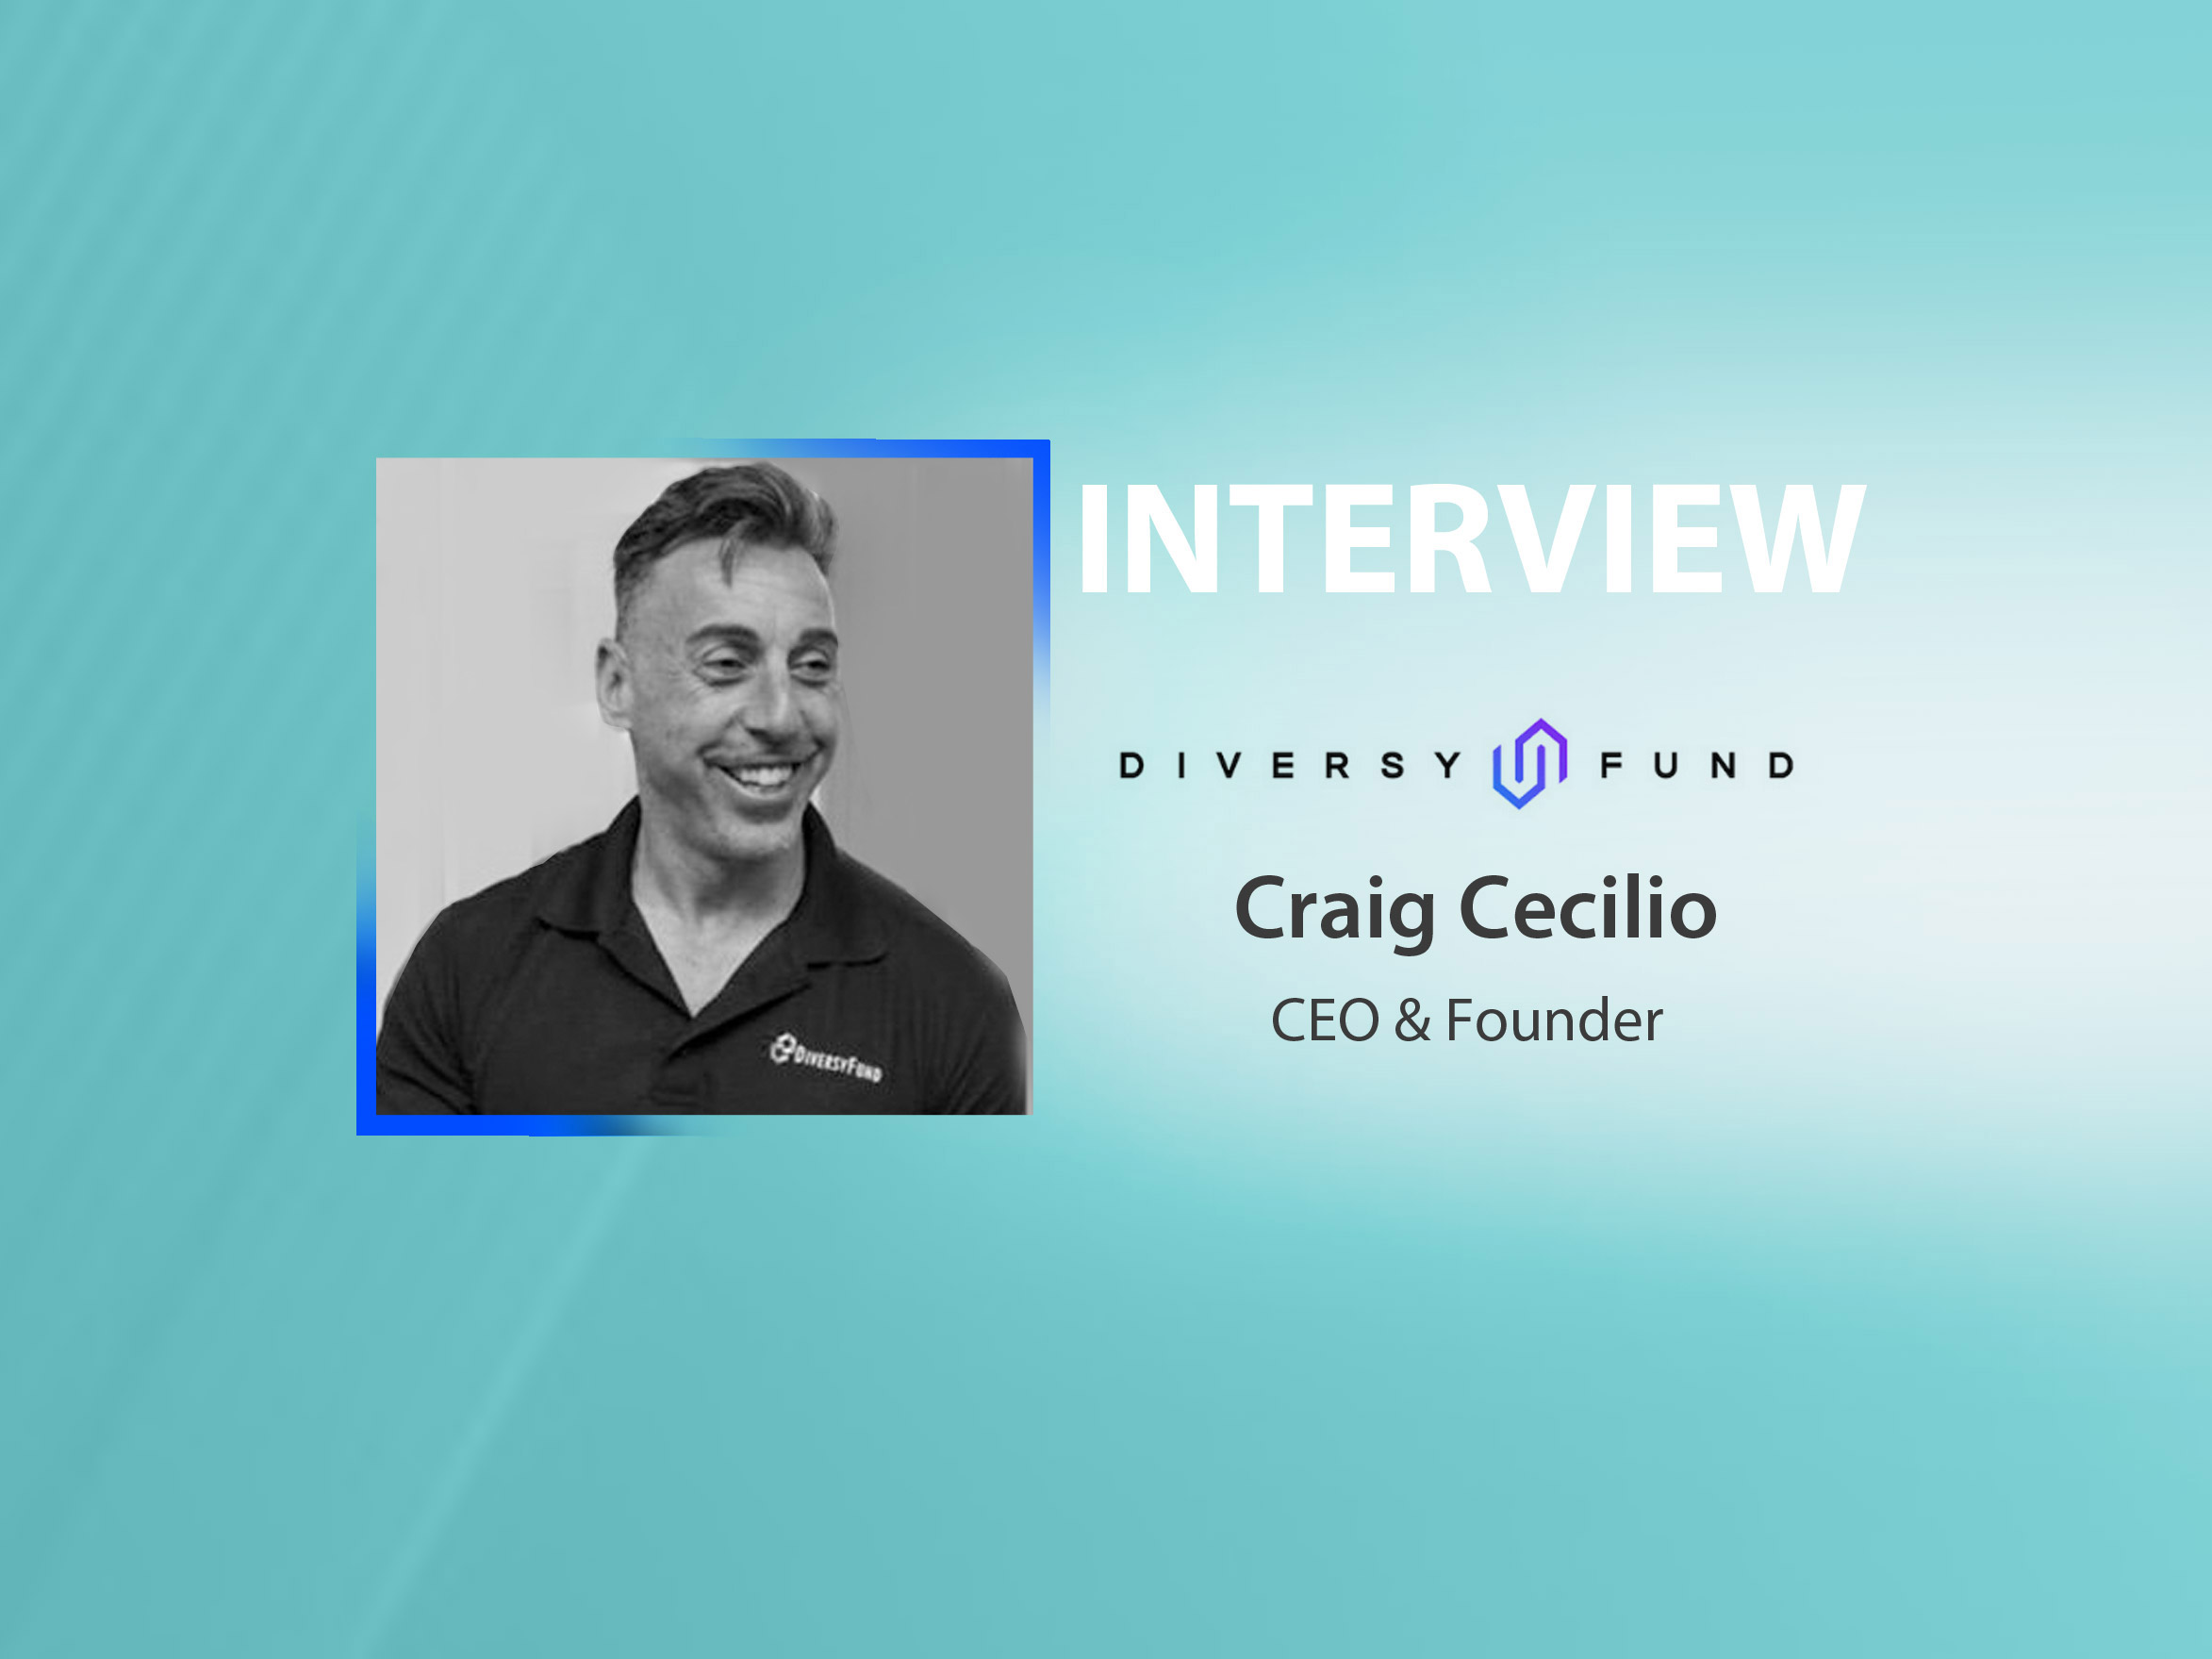 GlobalFintechSeries Interview with Craig Cecilio, CEO and Founder at DiversyFund, Inc.